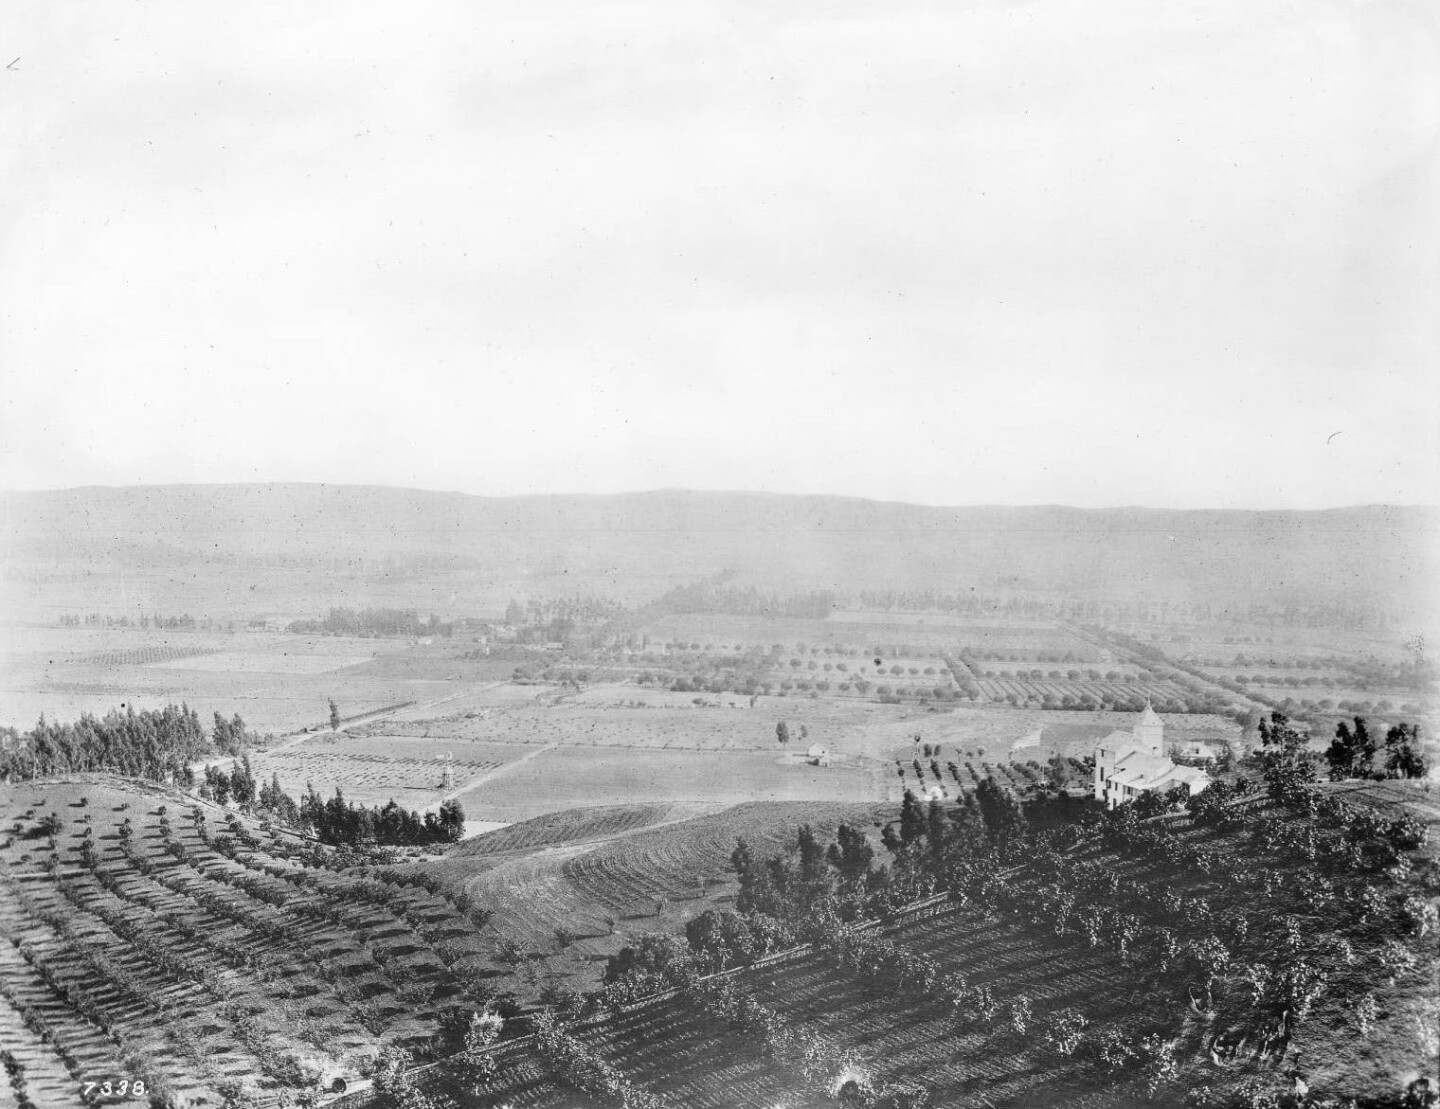 A panoramic view of Hollywood, looking south from Krotona Hill in 1900.